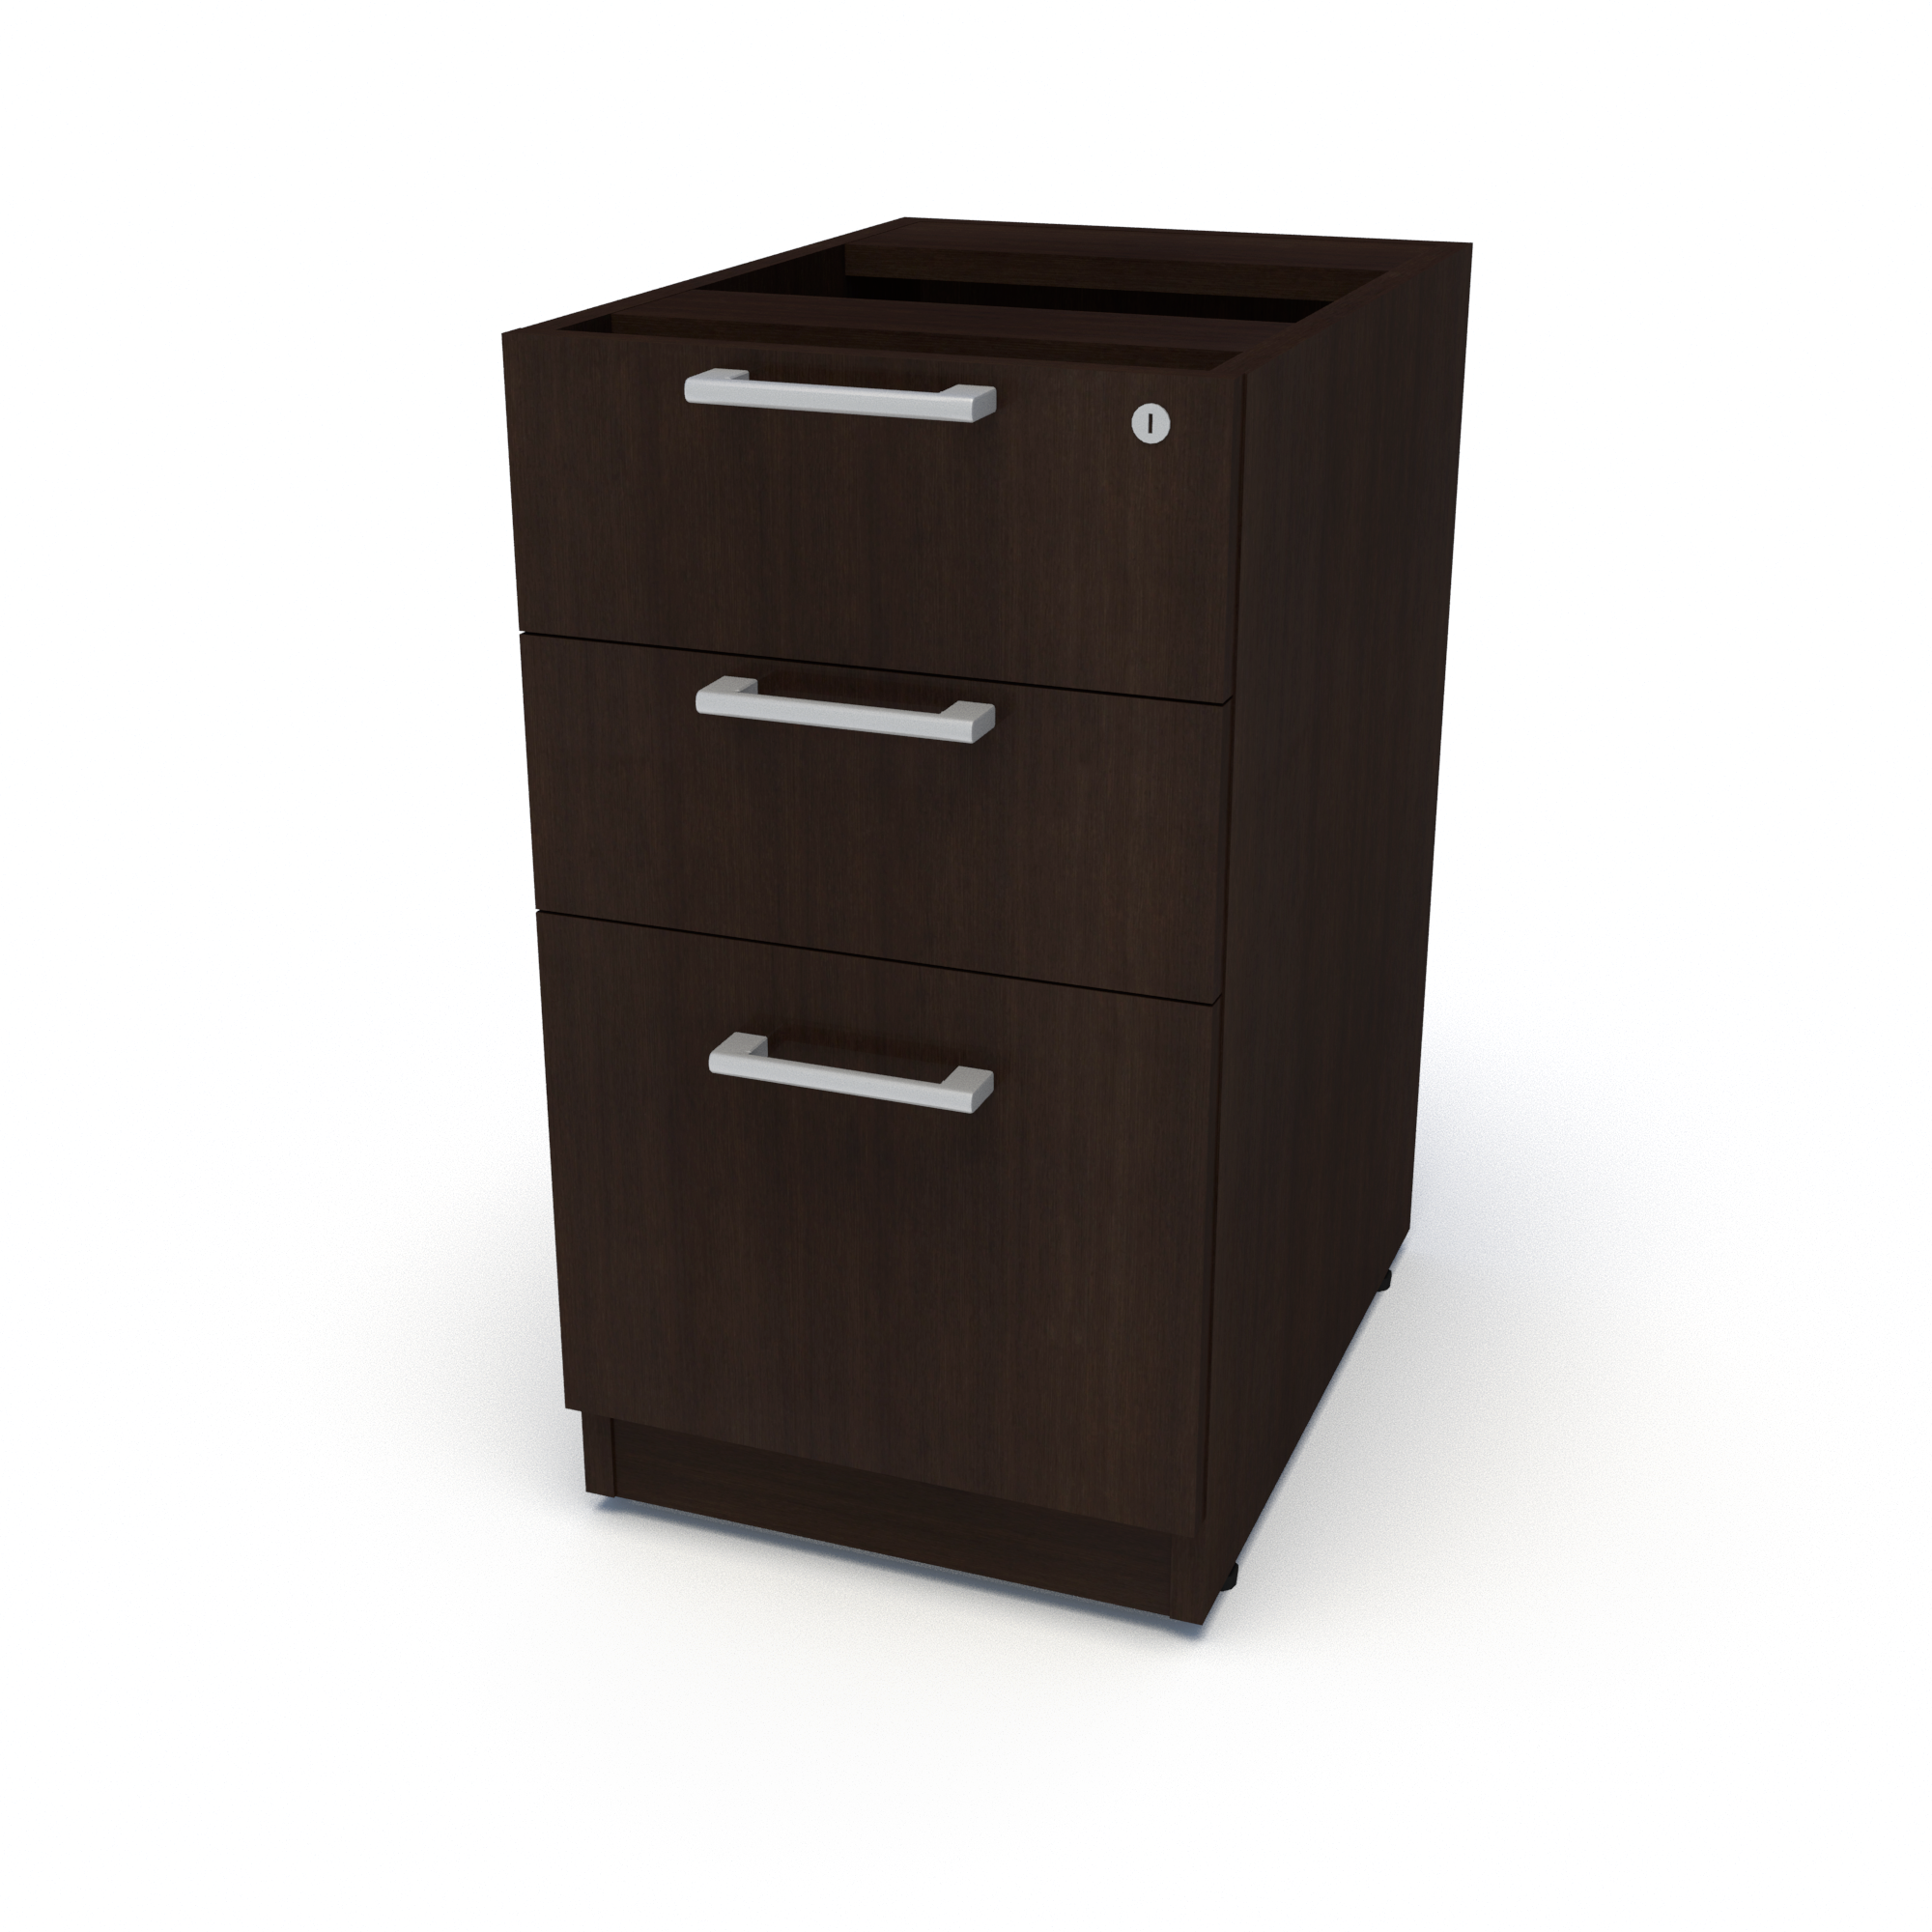 Top Supporting Pedestal, Box Box File (Cafe)